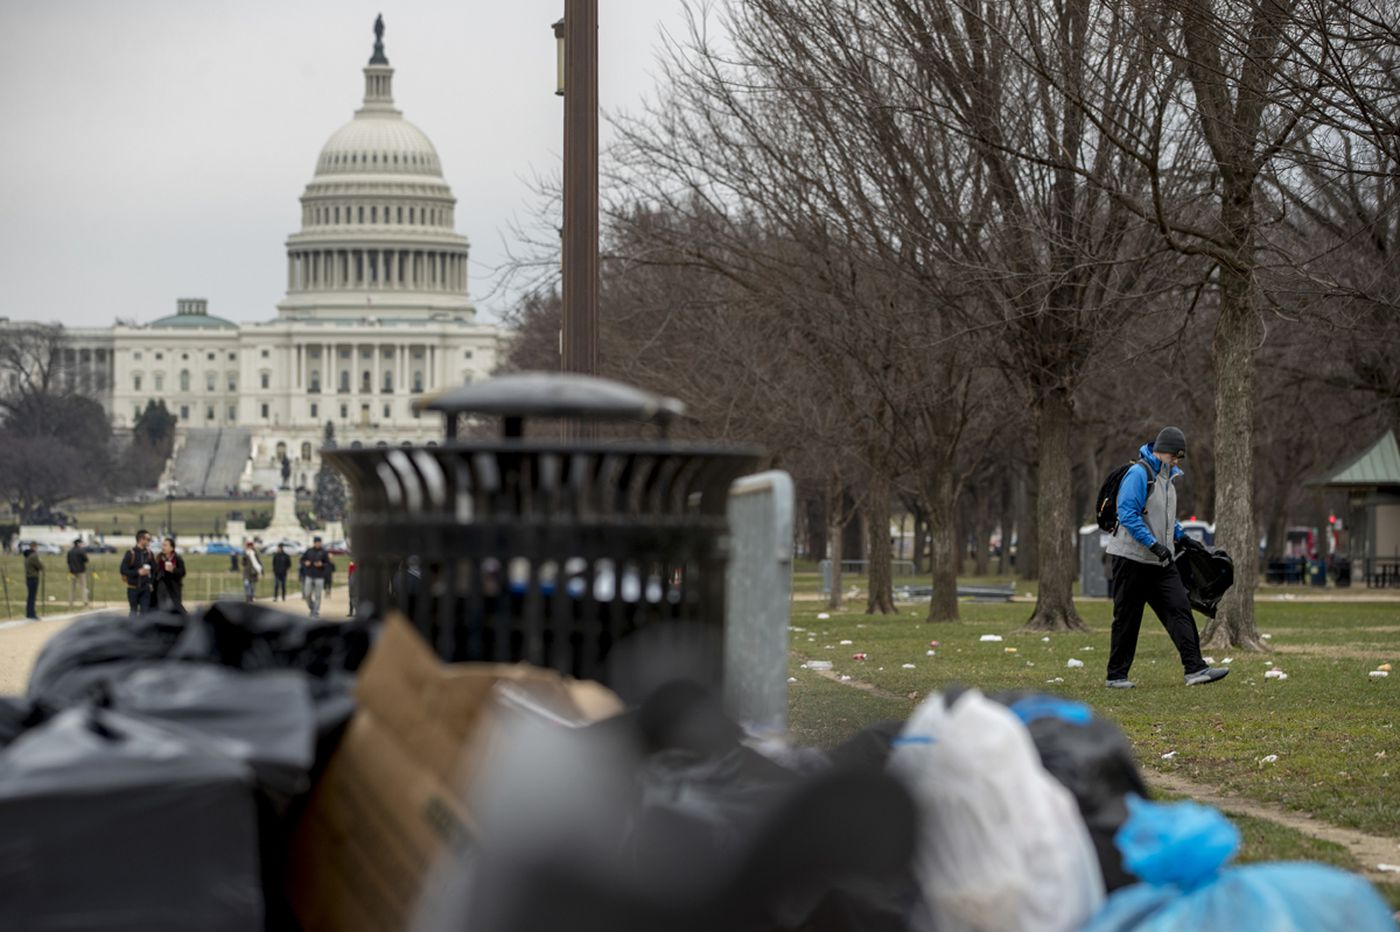 Government shutdown: What's been affected so far and what could be next